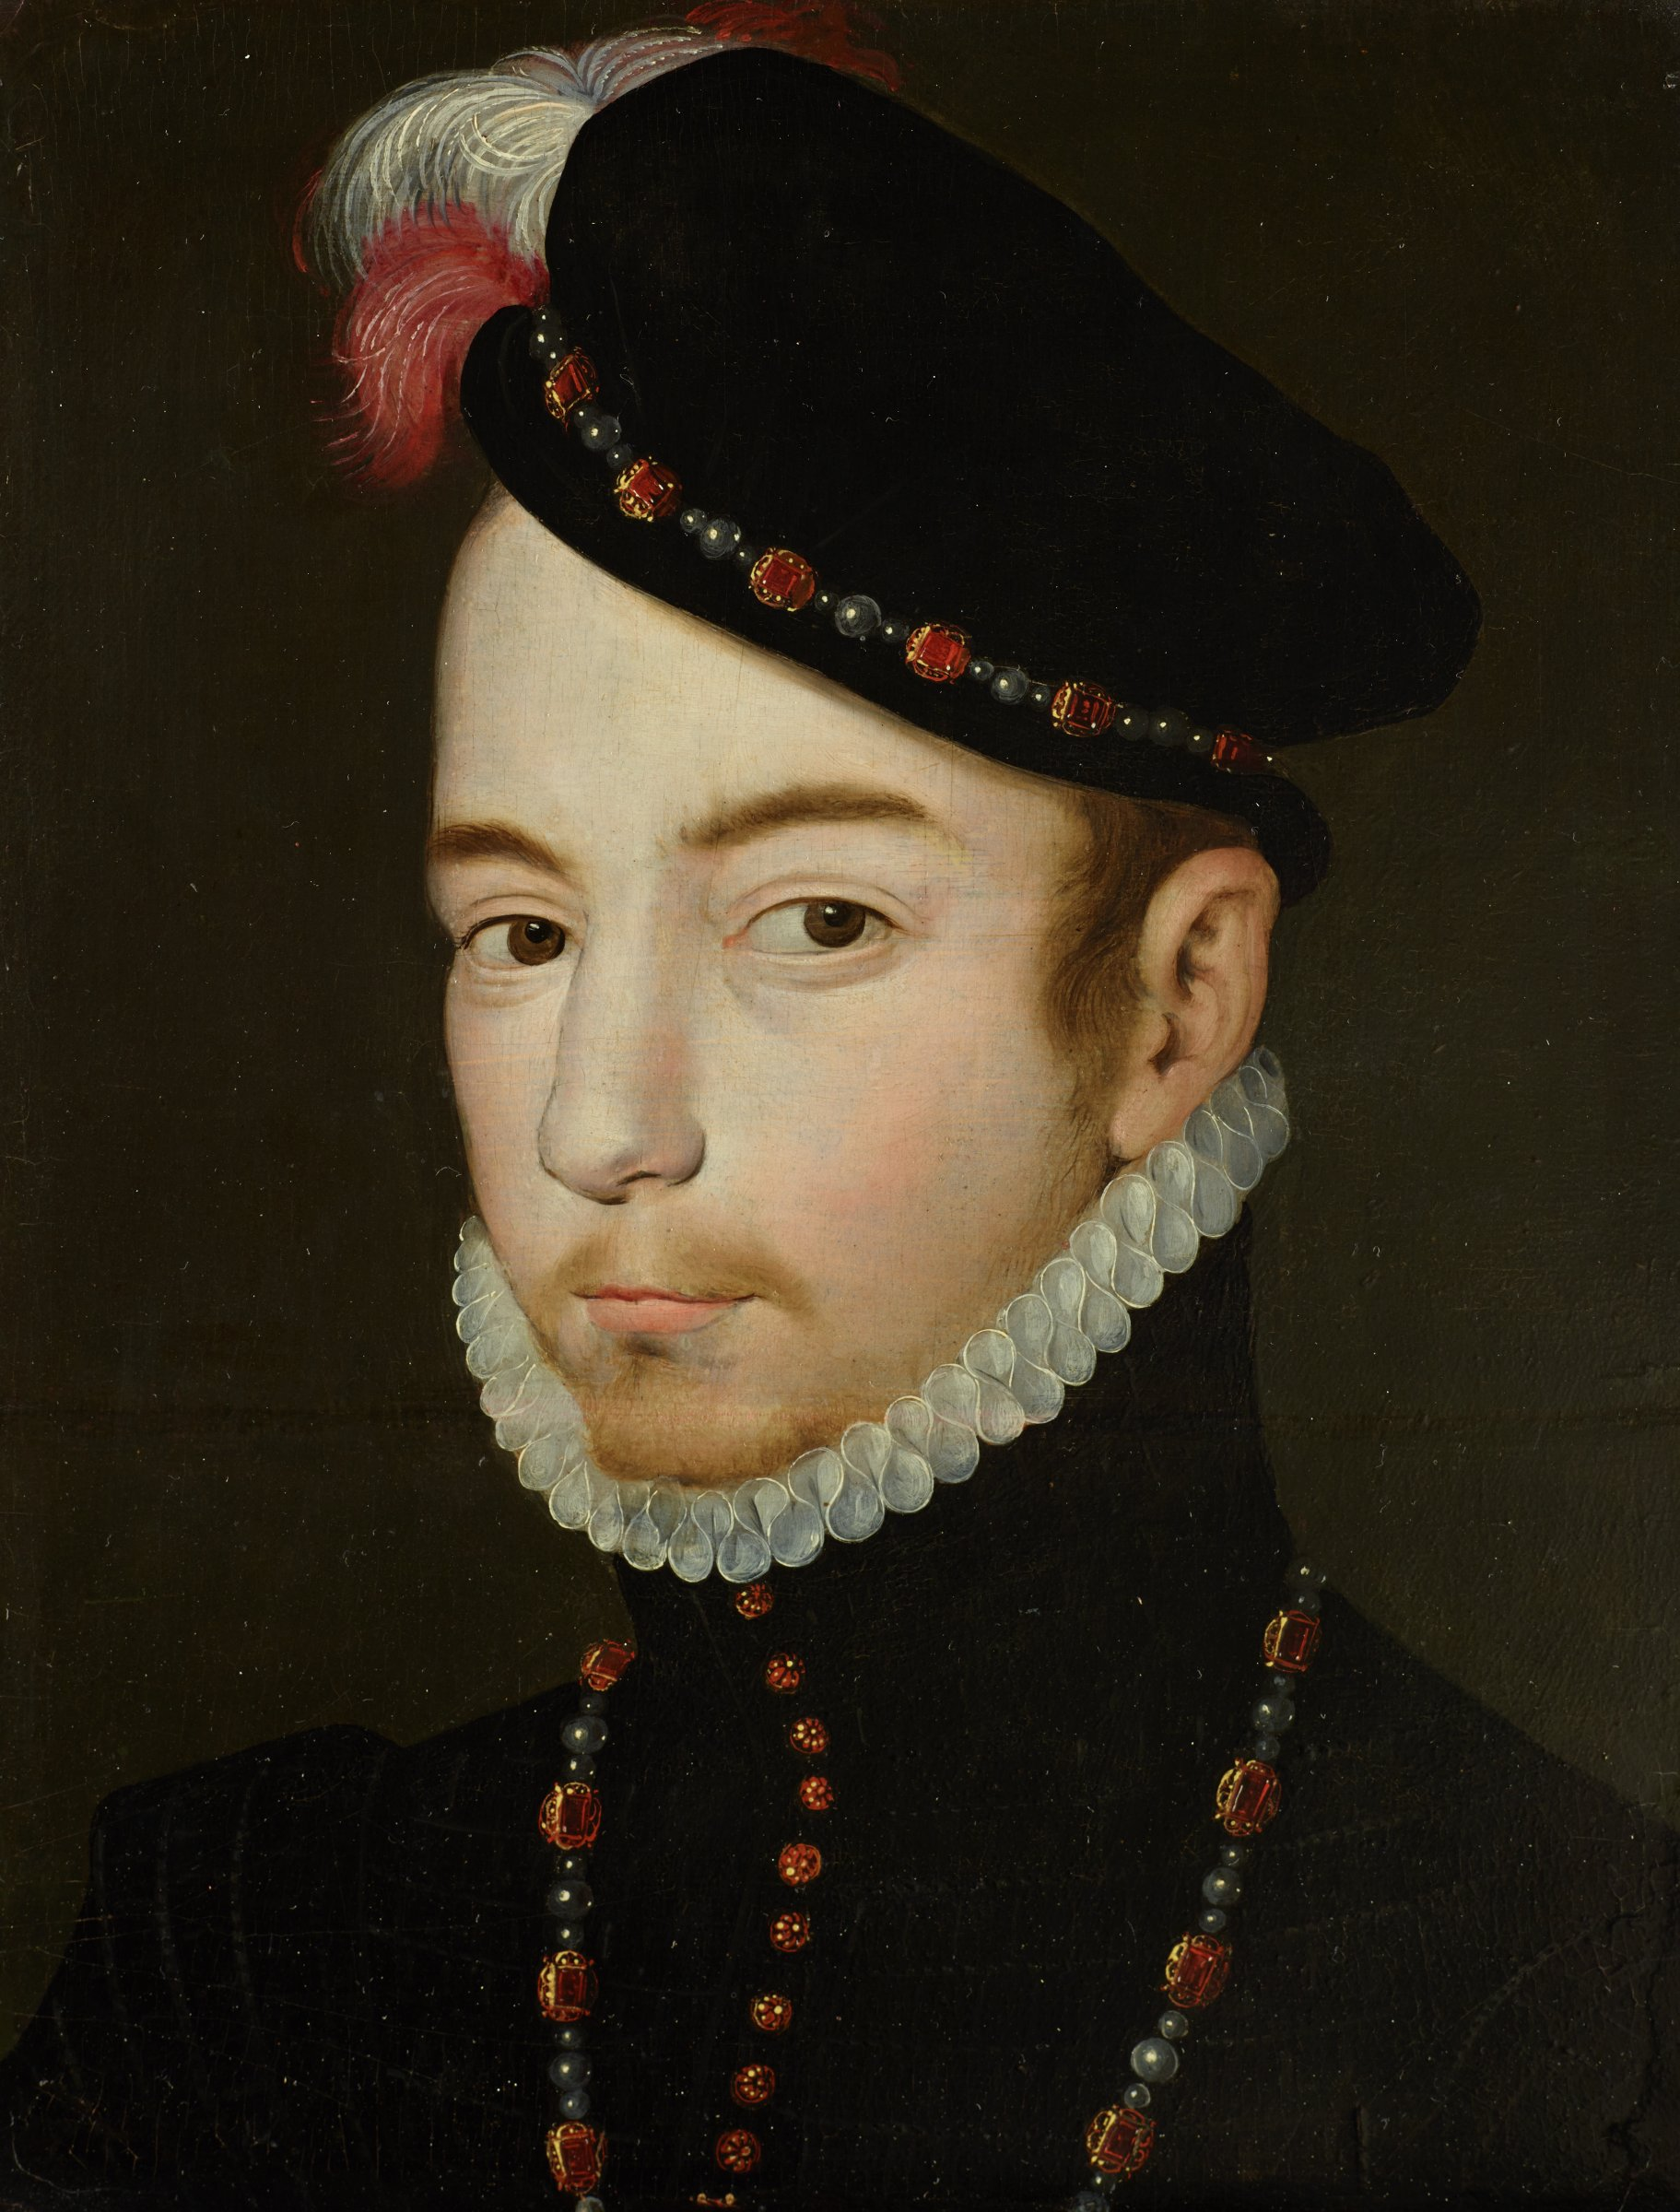 The painting is a portrait of a young man shown slightly less than in bust-length. His head is turned slightly sideways, but he is looking directly at the viewer. He is wearing black dress with a high color with white lace trim and a black hat decorated with feathers and jewelry. His garment is buttoned with red, precious stones and he is wearing a a jewelled necklace.